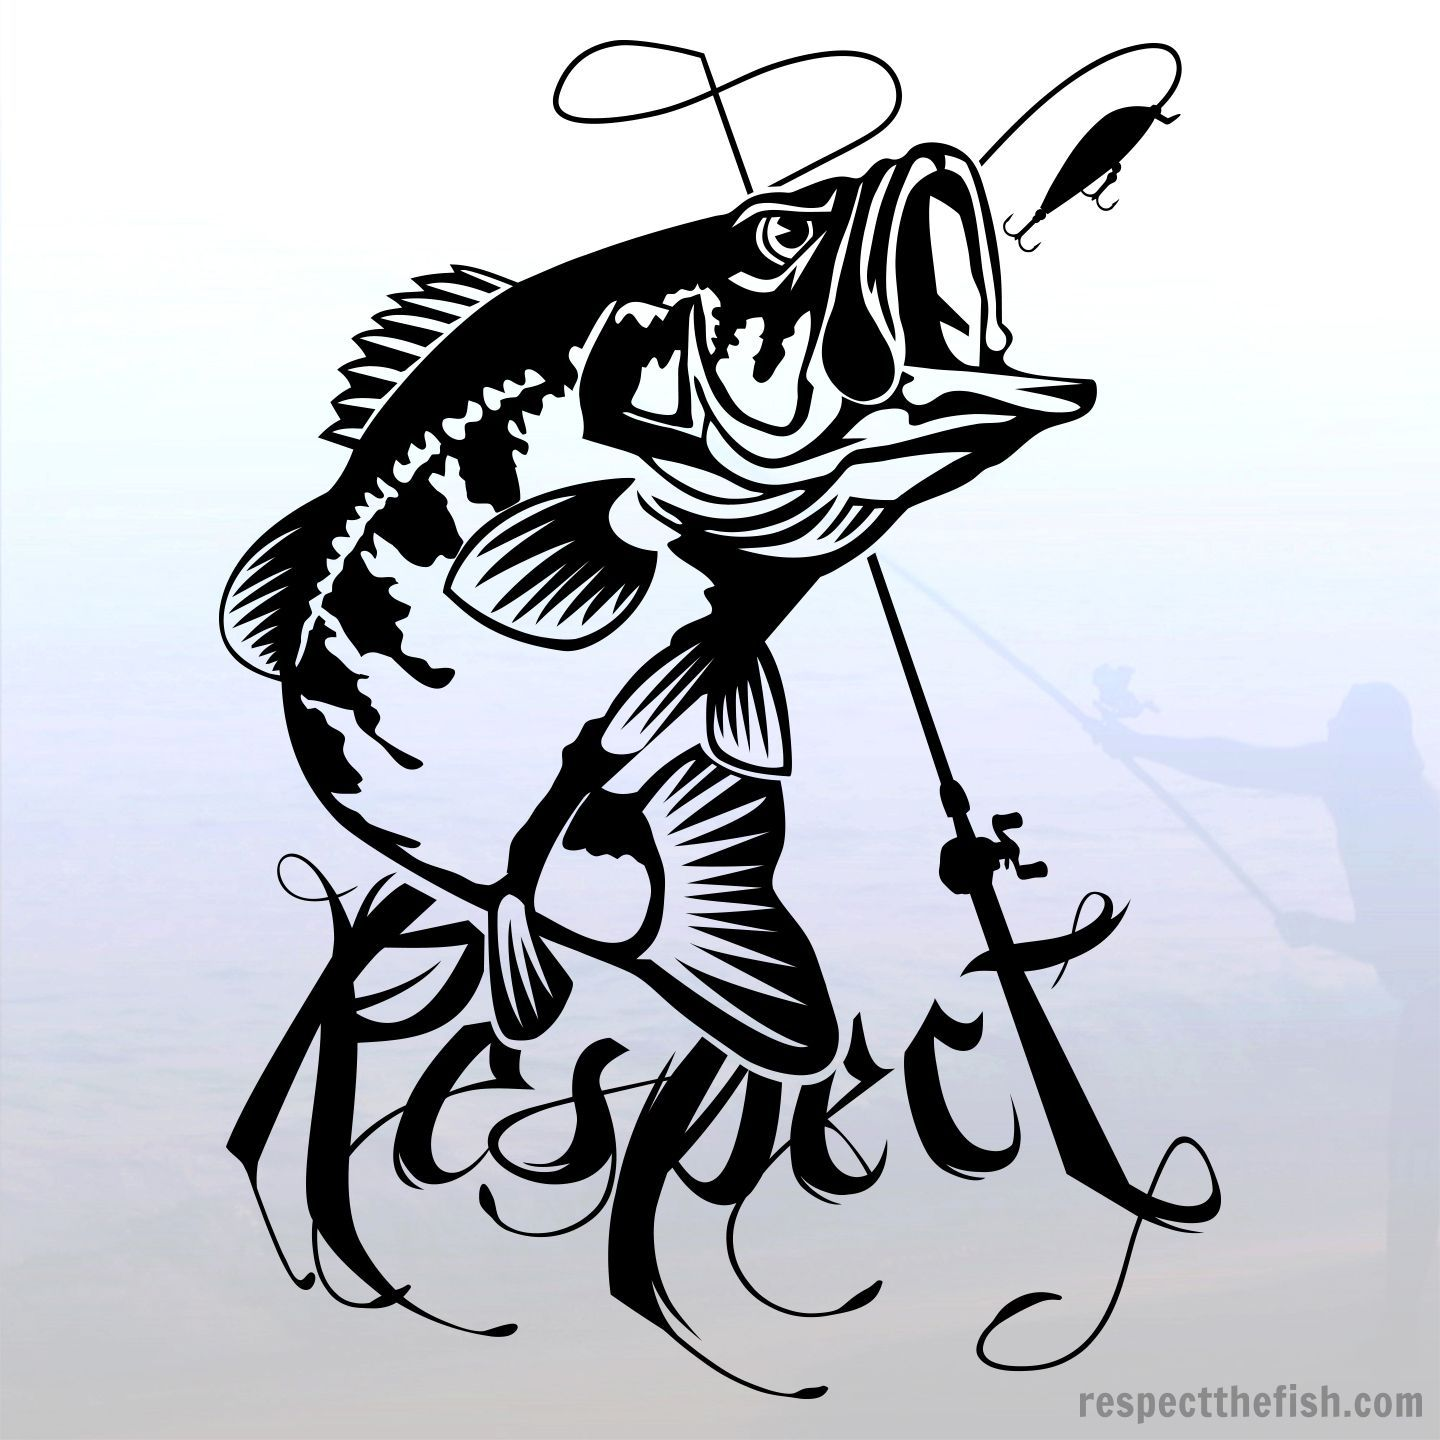 1440x1440 Largemouth Bass Fishing Window Sticker. Professional Grade Vinyl